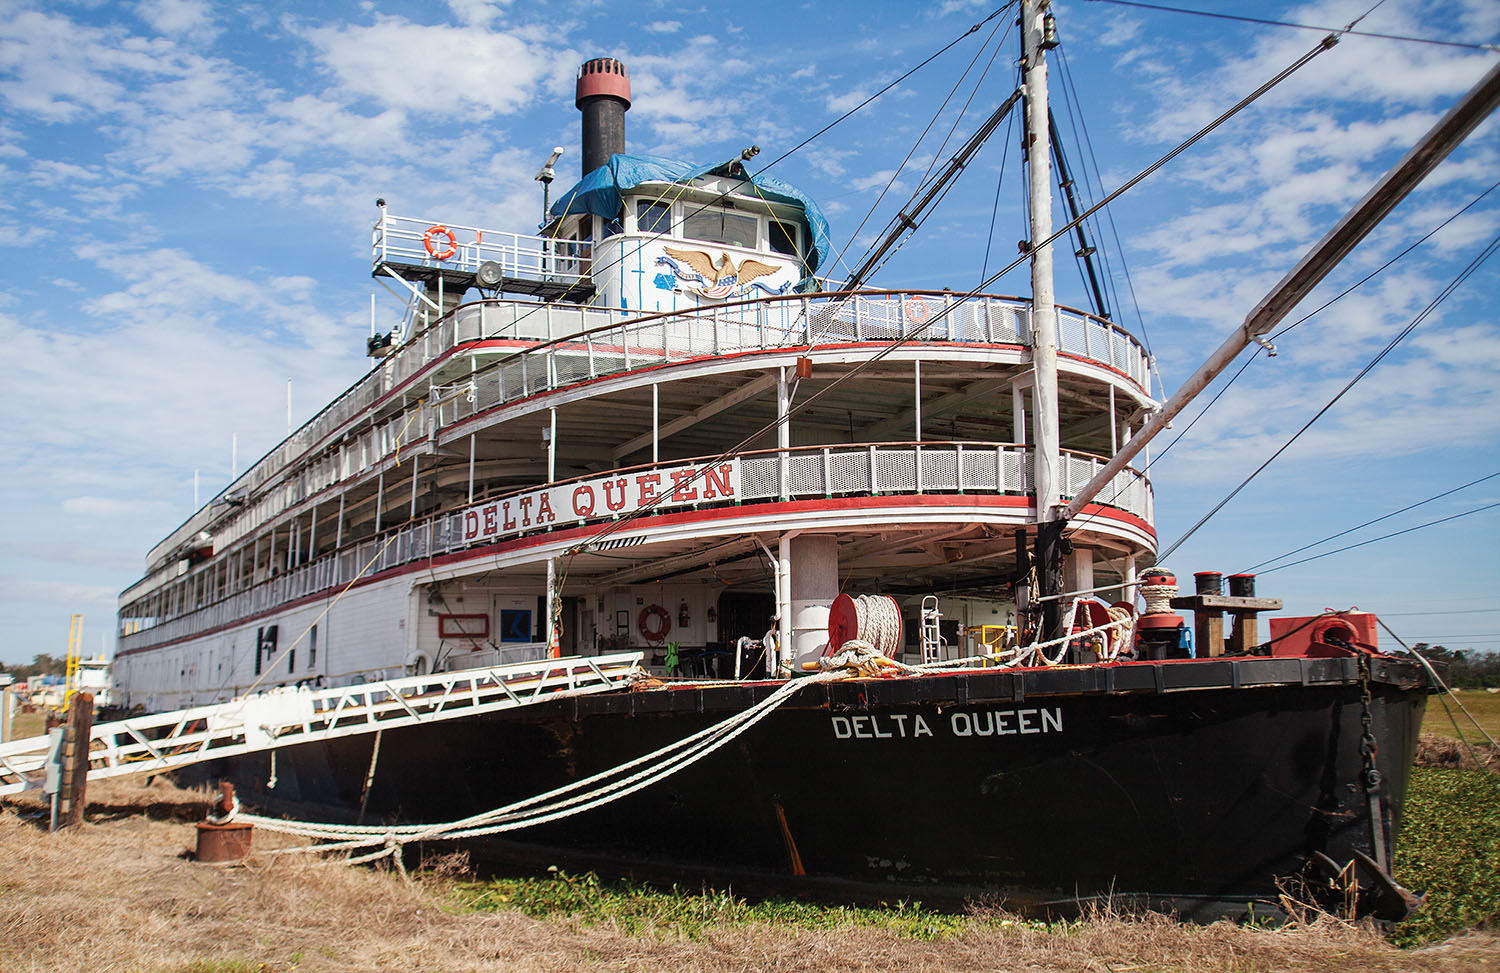 The steamer Delta Queen has been moored in Houma, La., since 2015, awaiting renewal of its exemption. (WJ file photo by Frank McCormack)